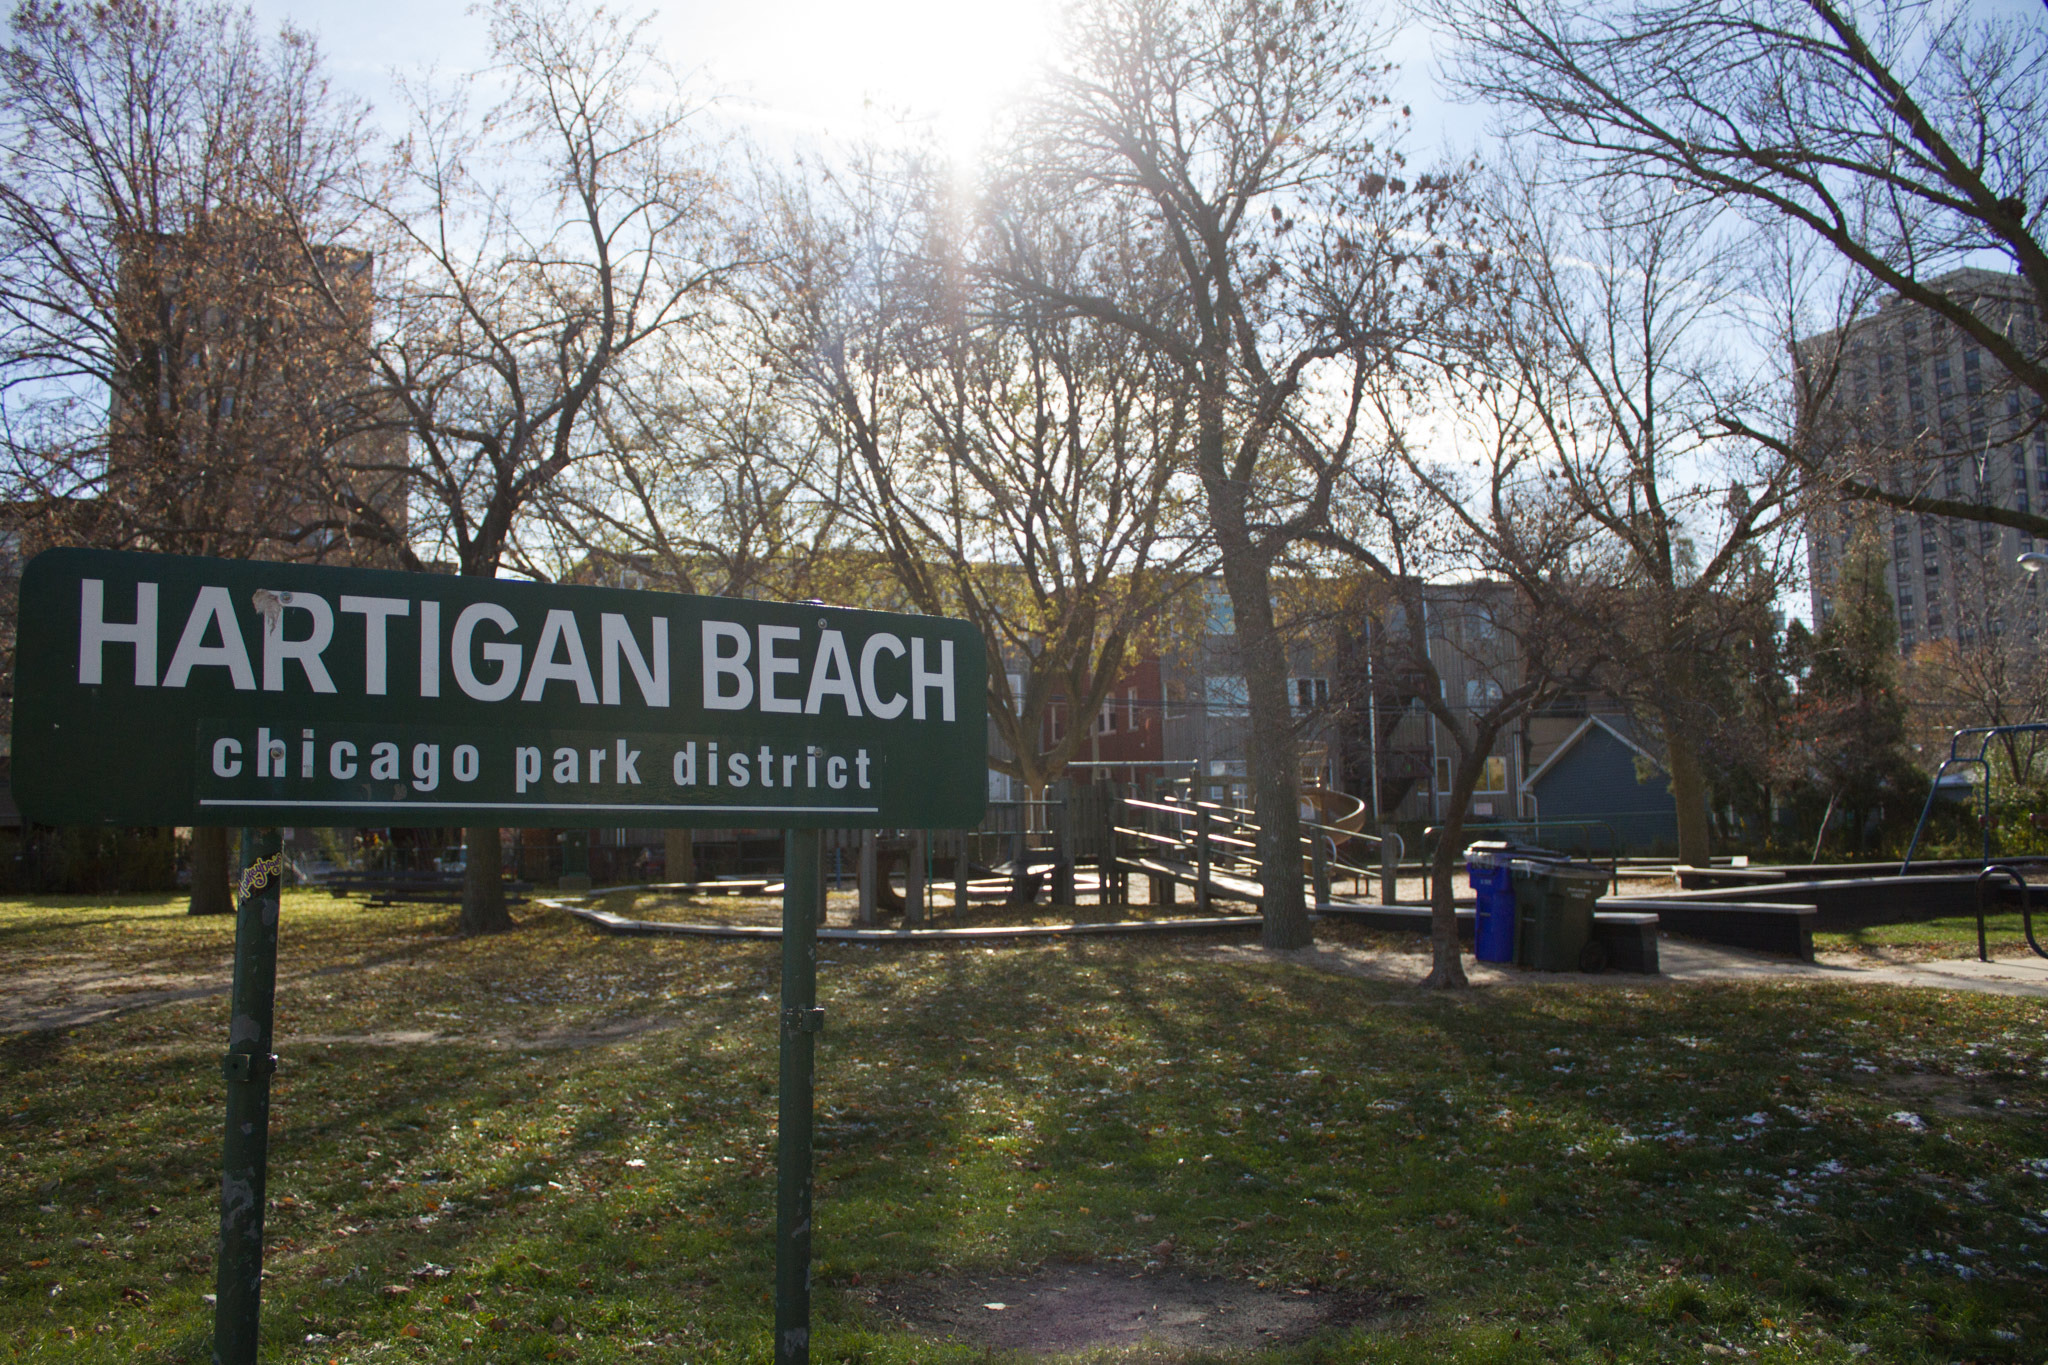 Hartigan Beach